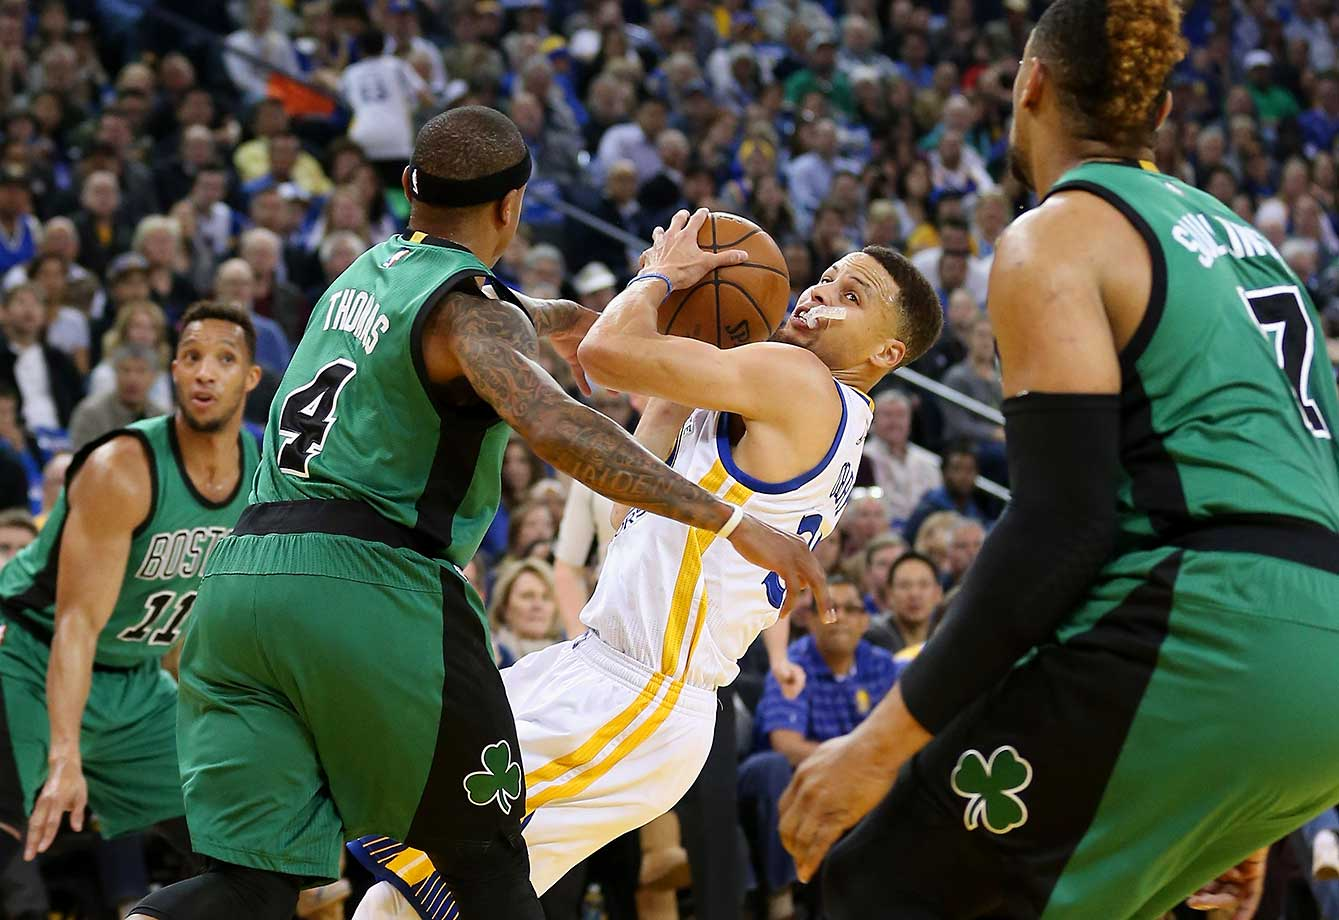 Here are some of the images that caught our eye on a night when the Boston Celtics snapped the Golden State Warriors' 54-game regular-season home winning streak. Steph Curry and the Warriors made 22 turnovers in the game.